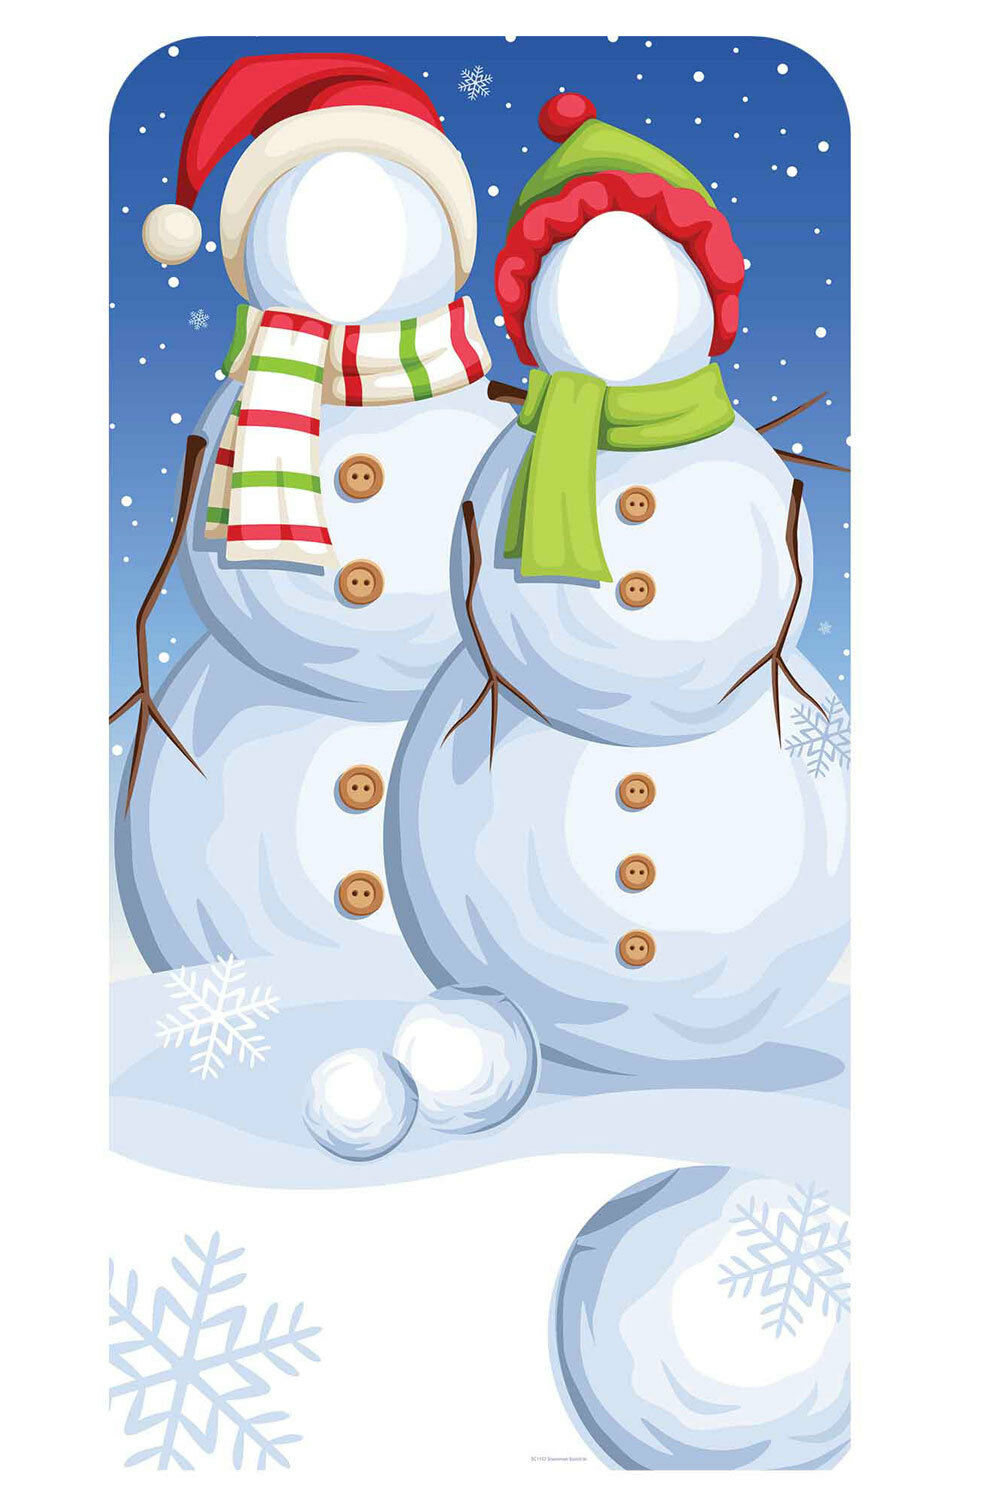 Christmas Snowmen Stand-In Cardboard Cutout   Standup  - Xmas Party Photos